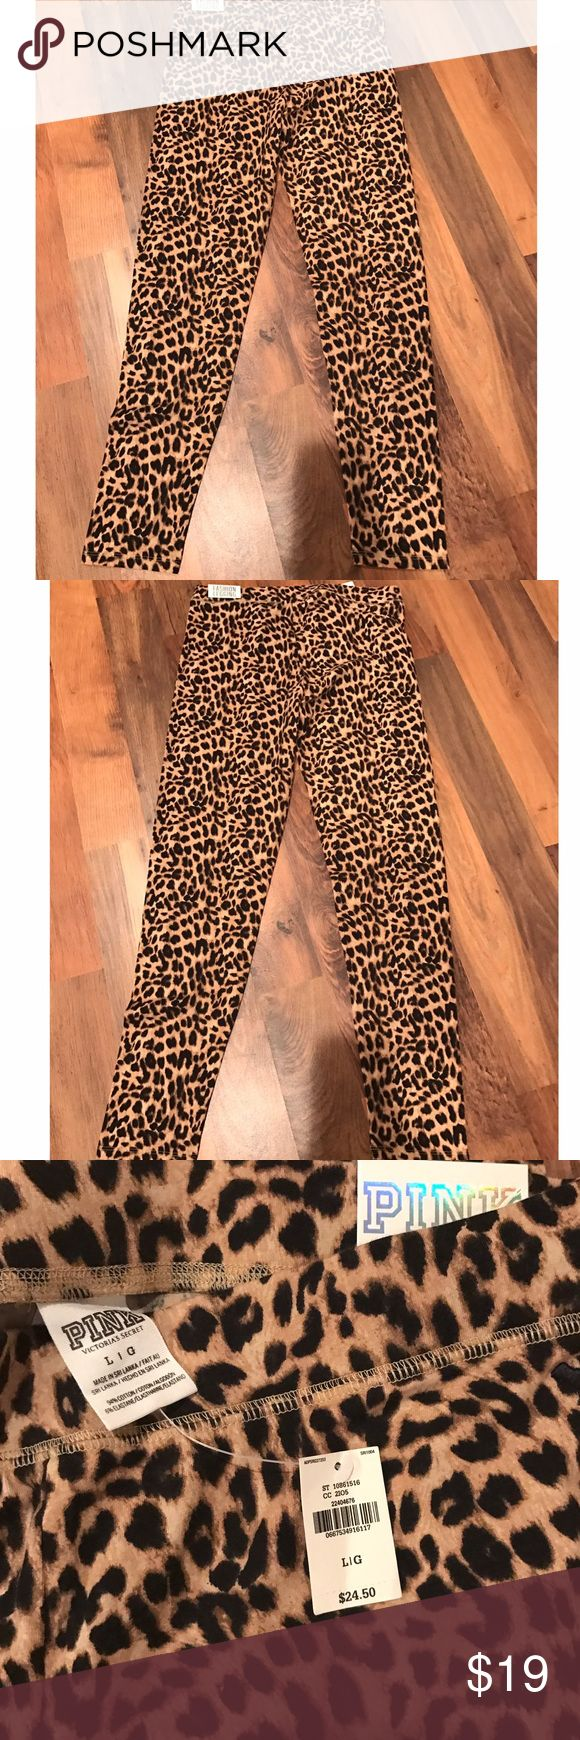 ✨NWT: Pink by Victoria's Secret leopard leggings✨ NWT: leopard print Pink by Victoria's Secret leggings. Size large PINK Victoria's Secret Pants Leggings